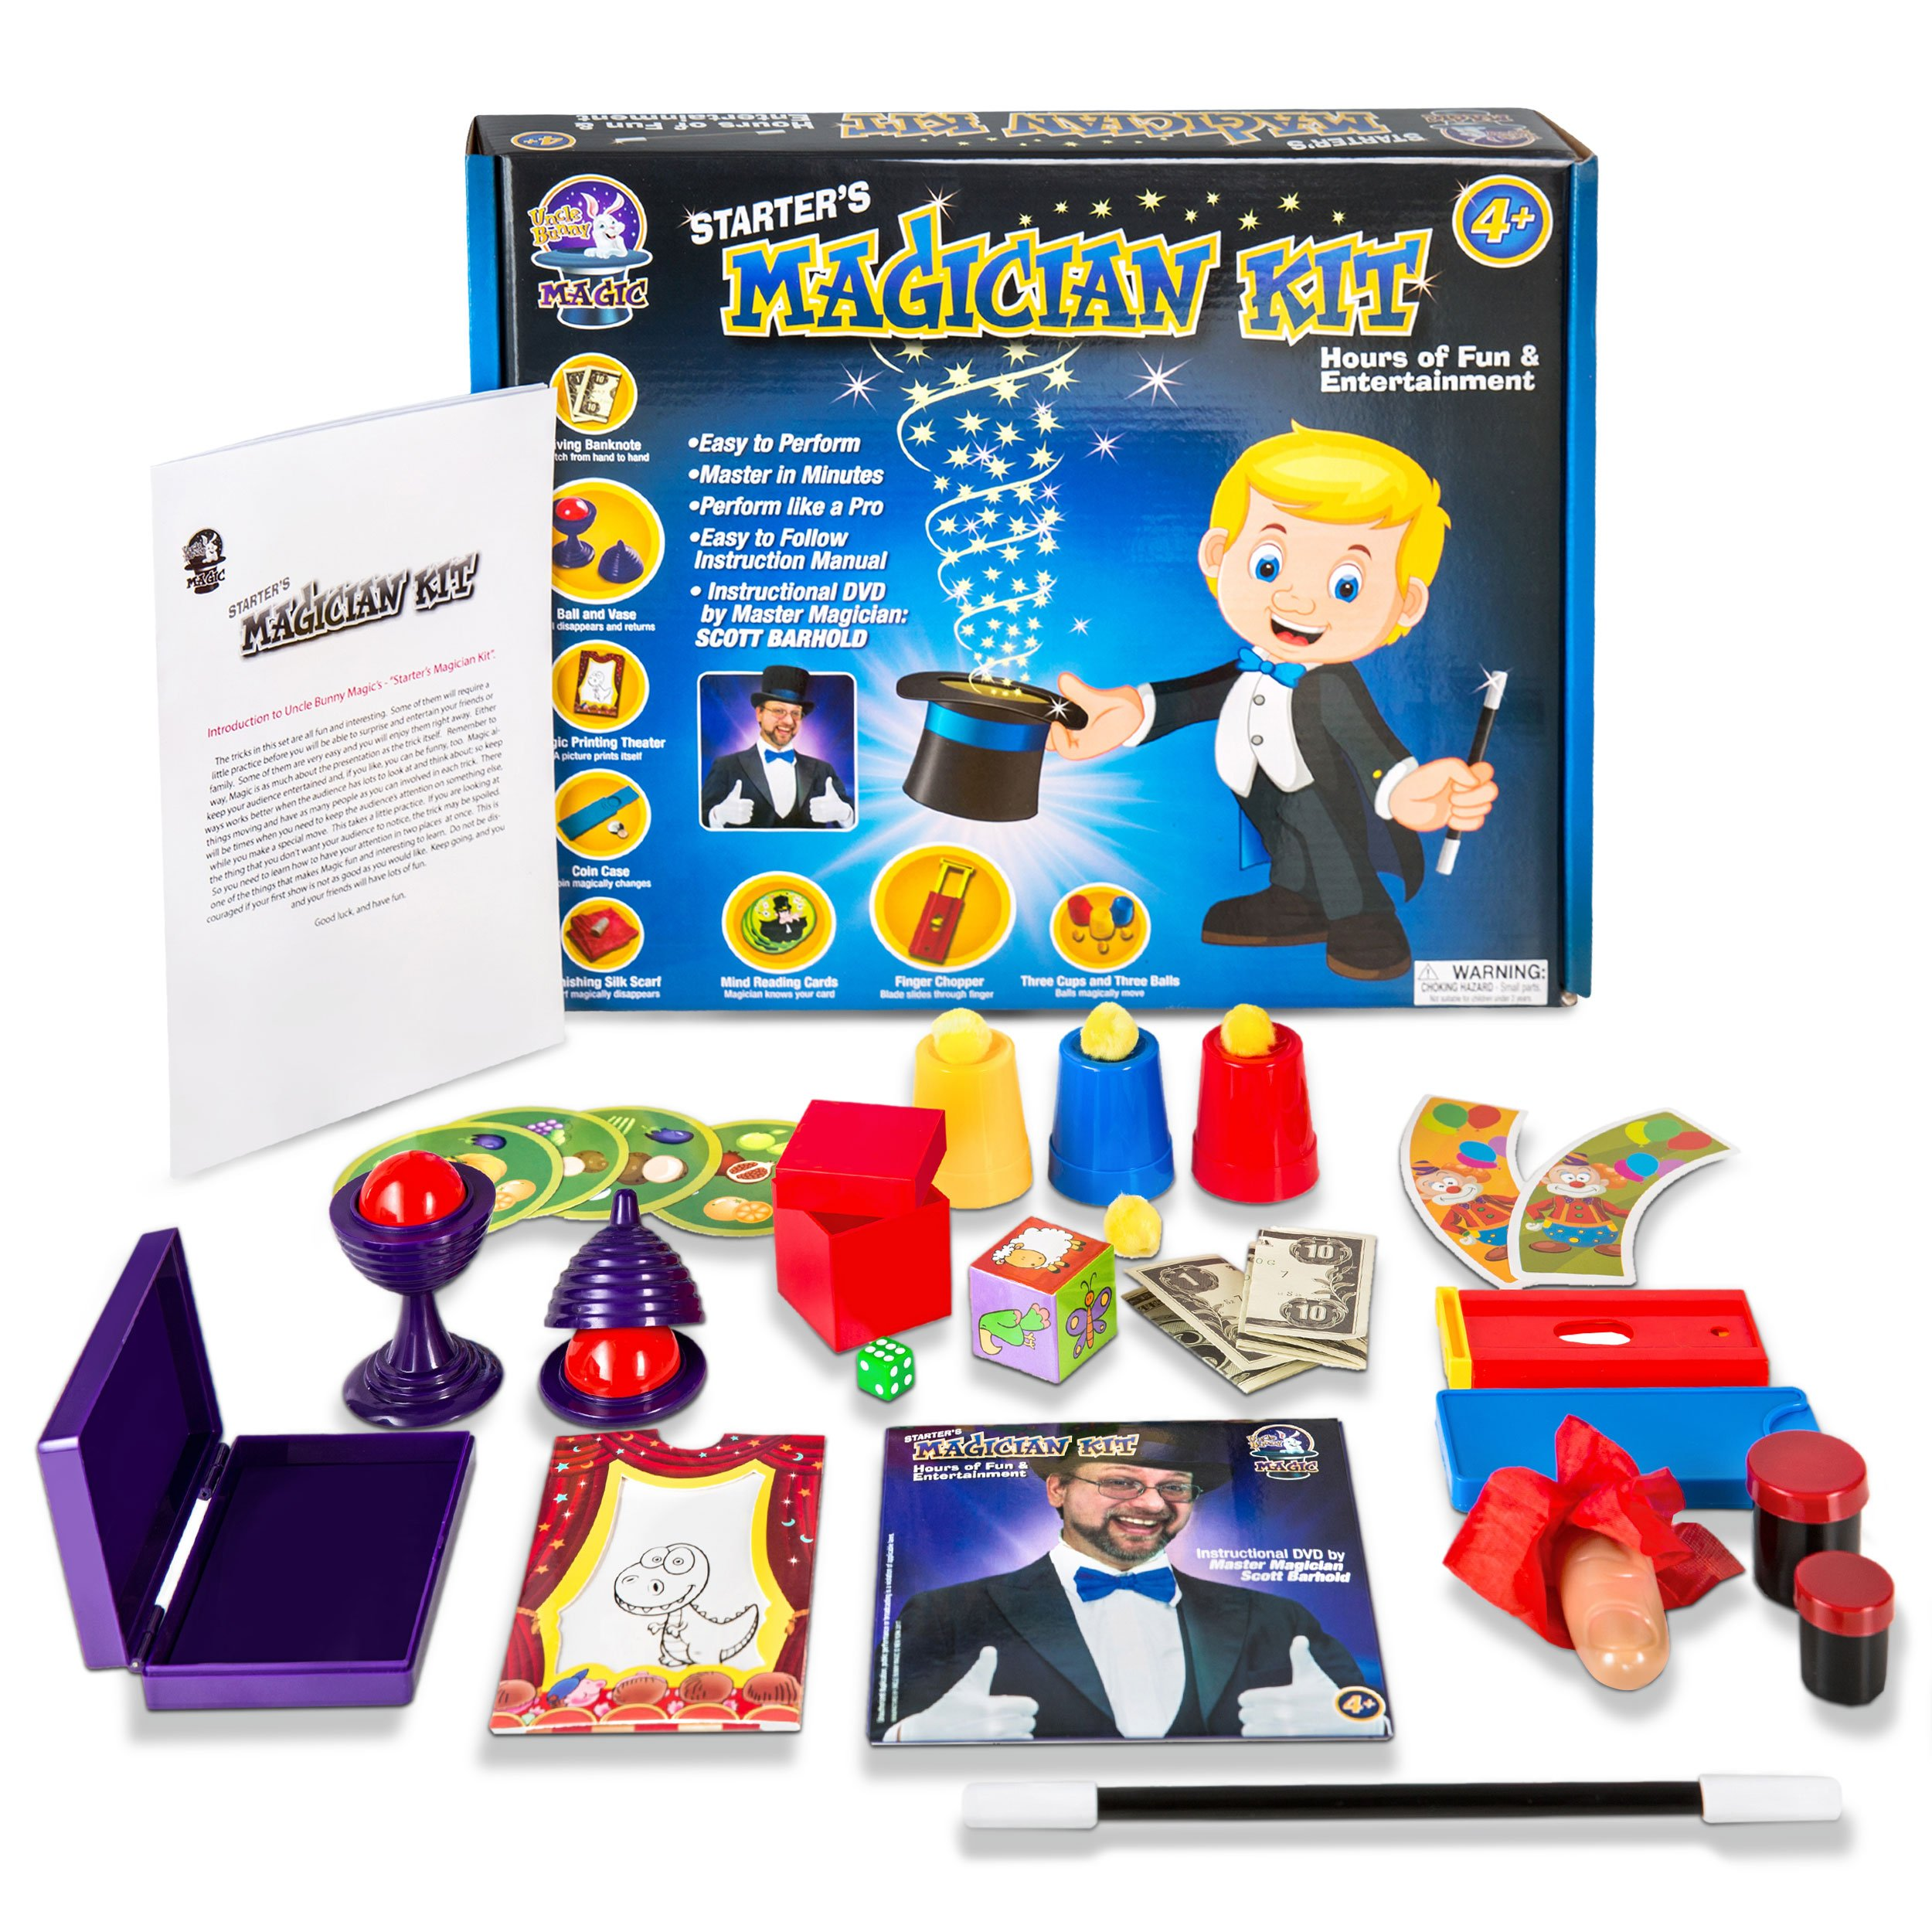 Uncle Bunny Starter Magic Tricks Set for Kids - 12 Exciting Magician Items, Instruction DVD - Magic Kit Gift Set